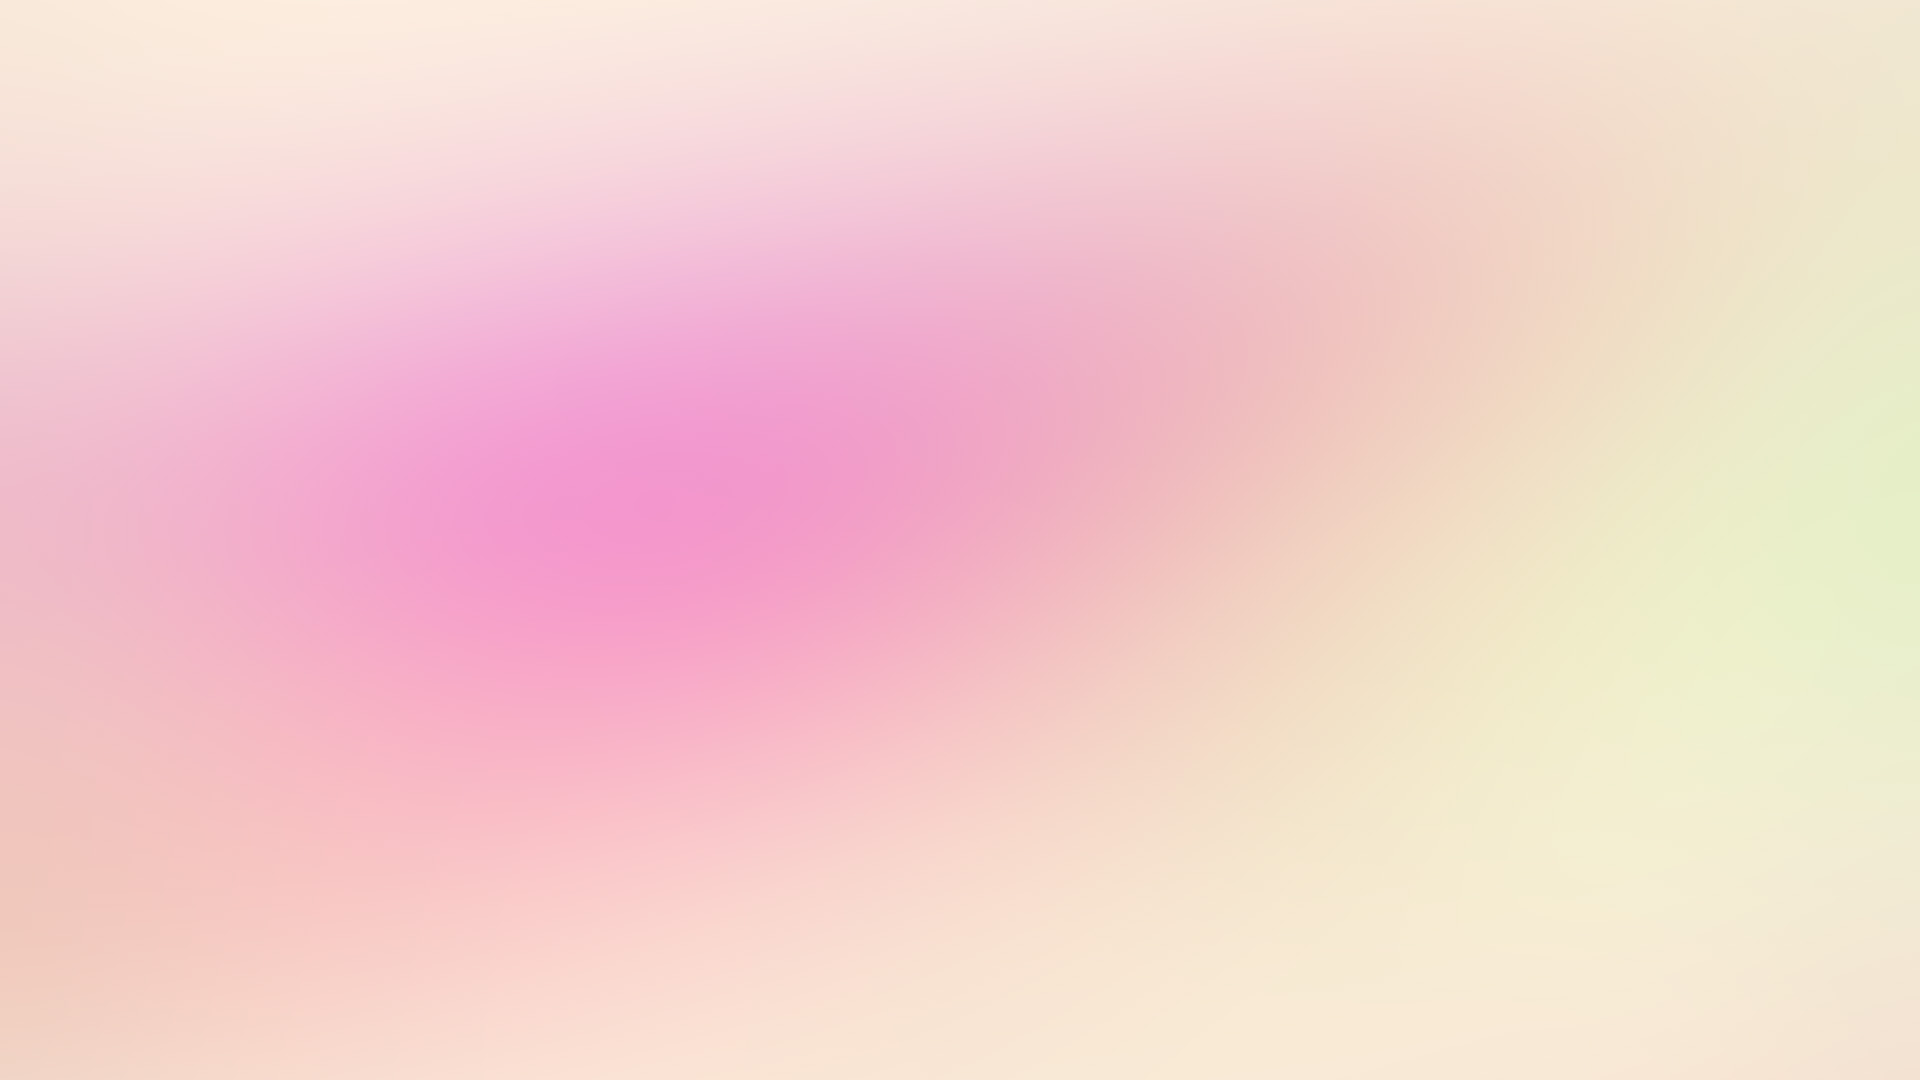 Pink And Blue Wallpaper Cute Si51 Soft Pastel Red Gradation Blur Wallpaper